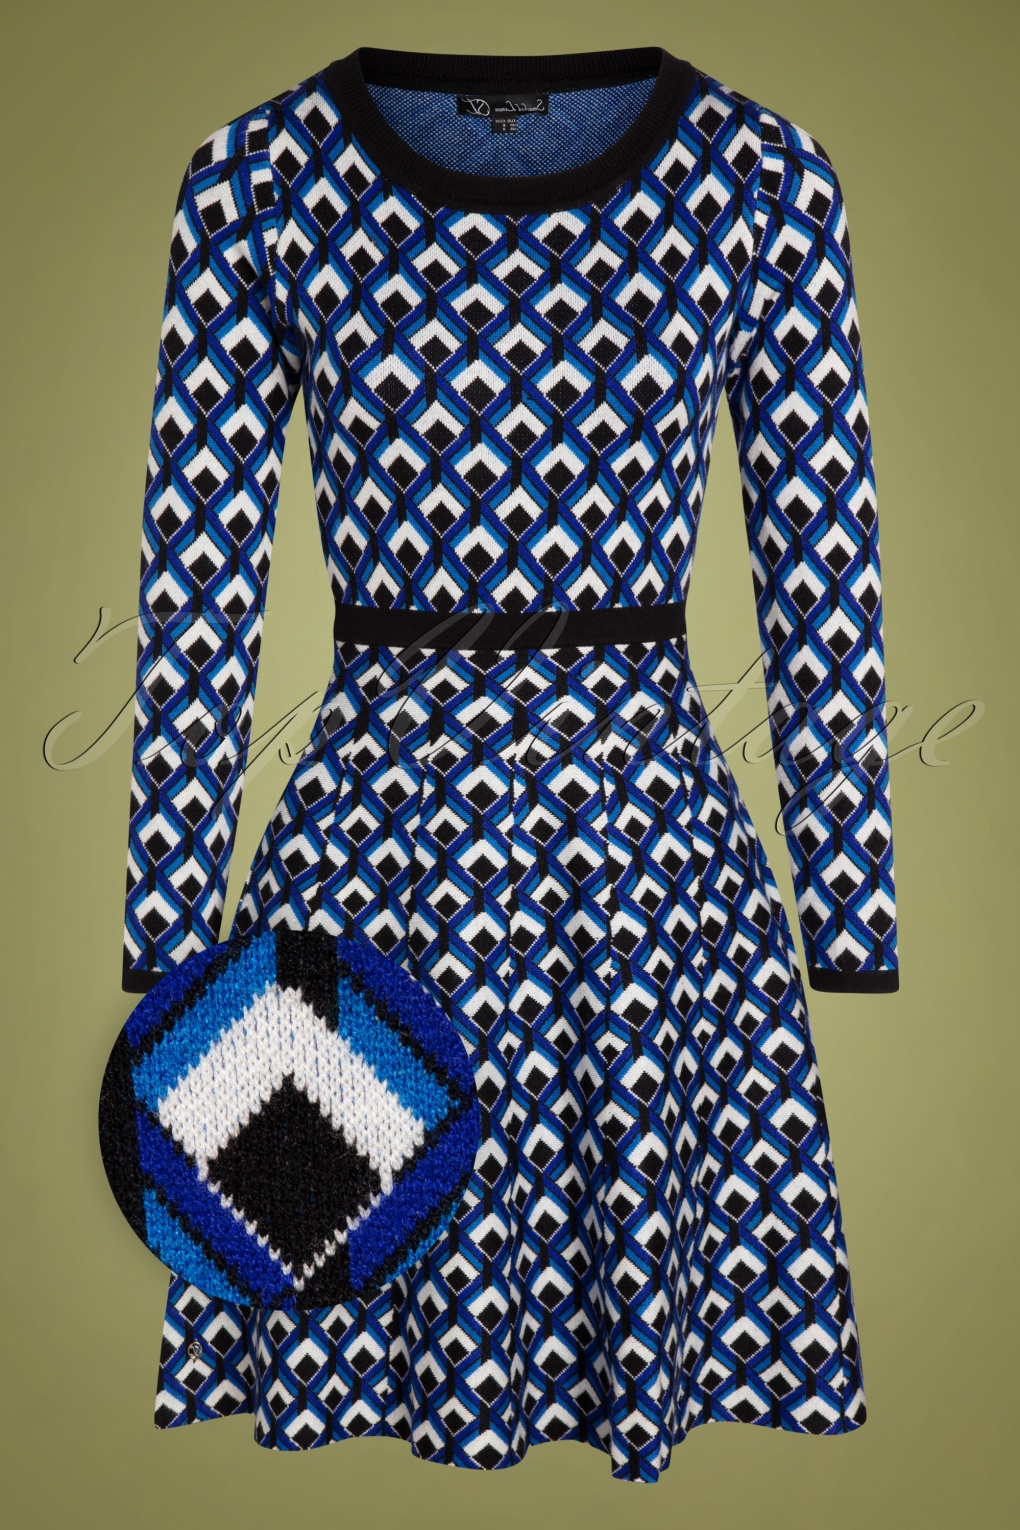 60s Dresses | 1960s Dresses Mod, Mini, Hippie 60s Georgina Knitted Dress in Cobalt Blue and Black £82.16 AT vintagedancer.com